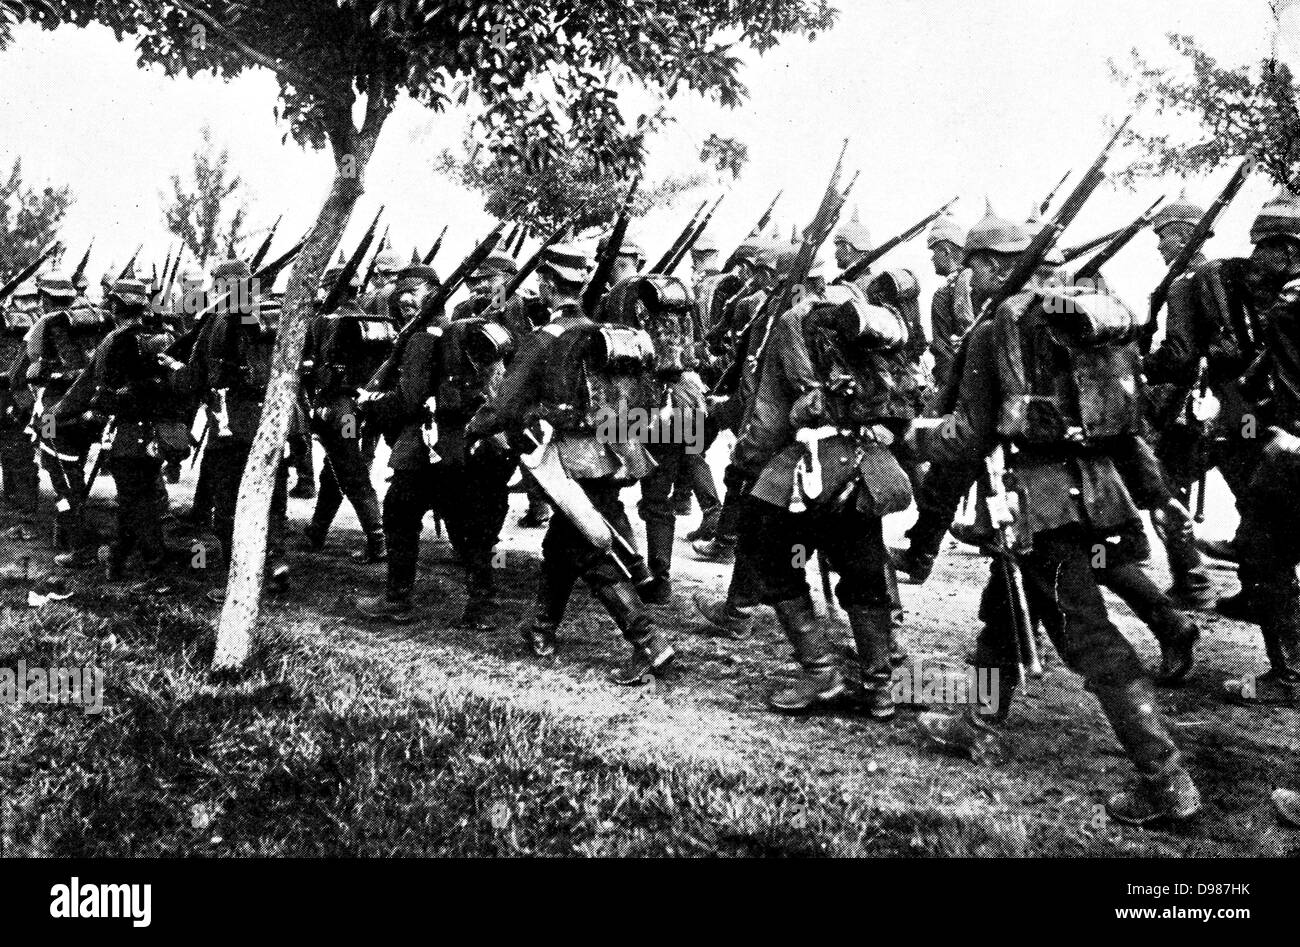 German infantry on the march. - Stock Image